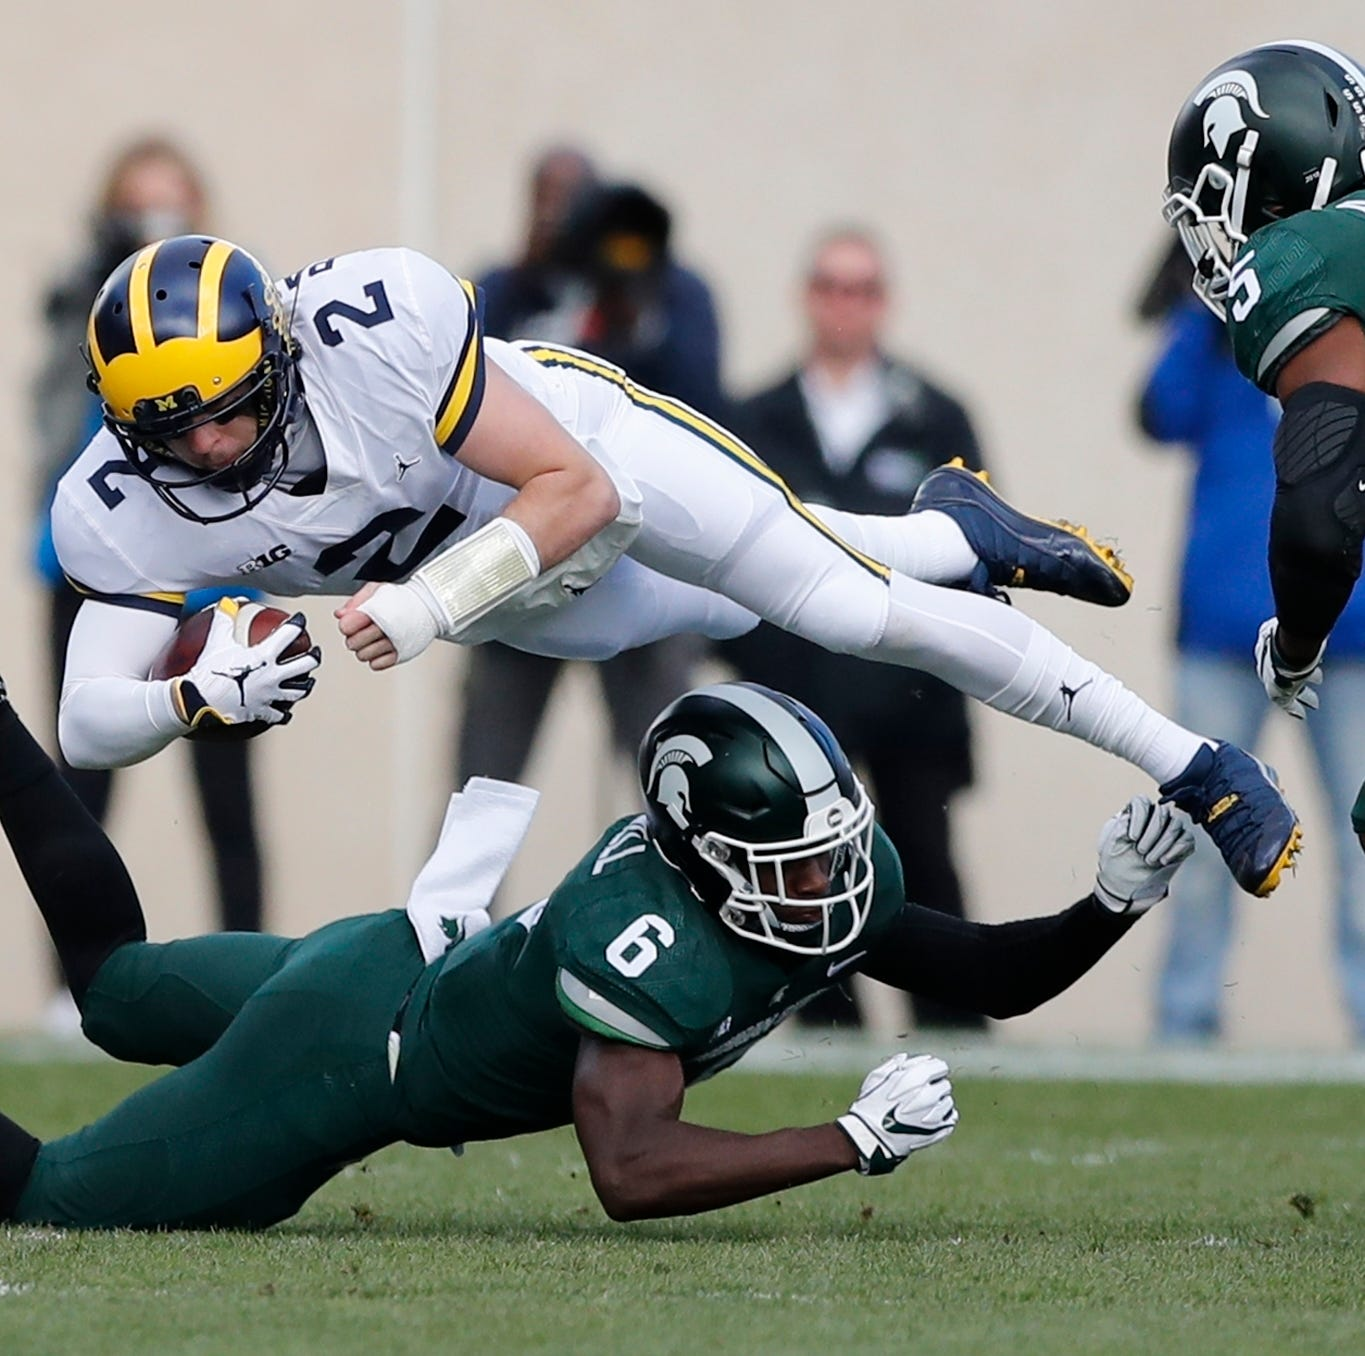 Live updates: Weather delay suspends UM-MSU matchup